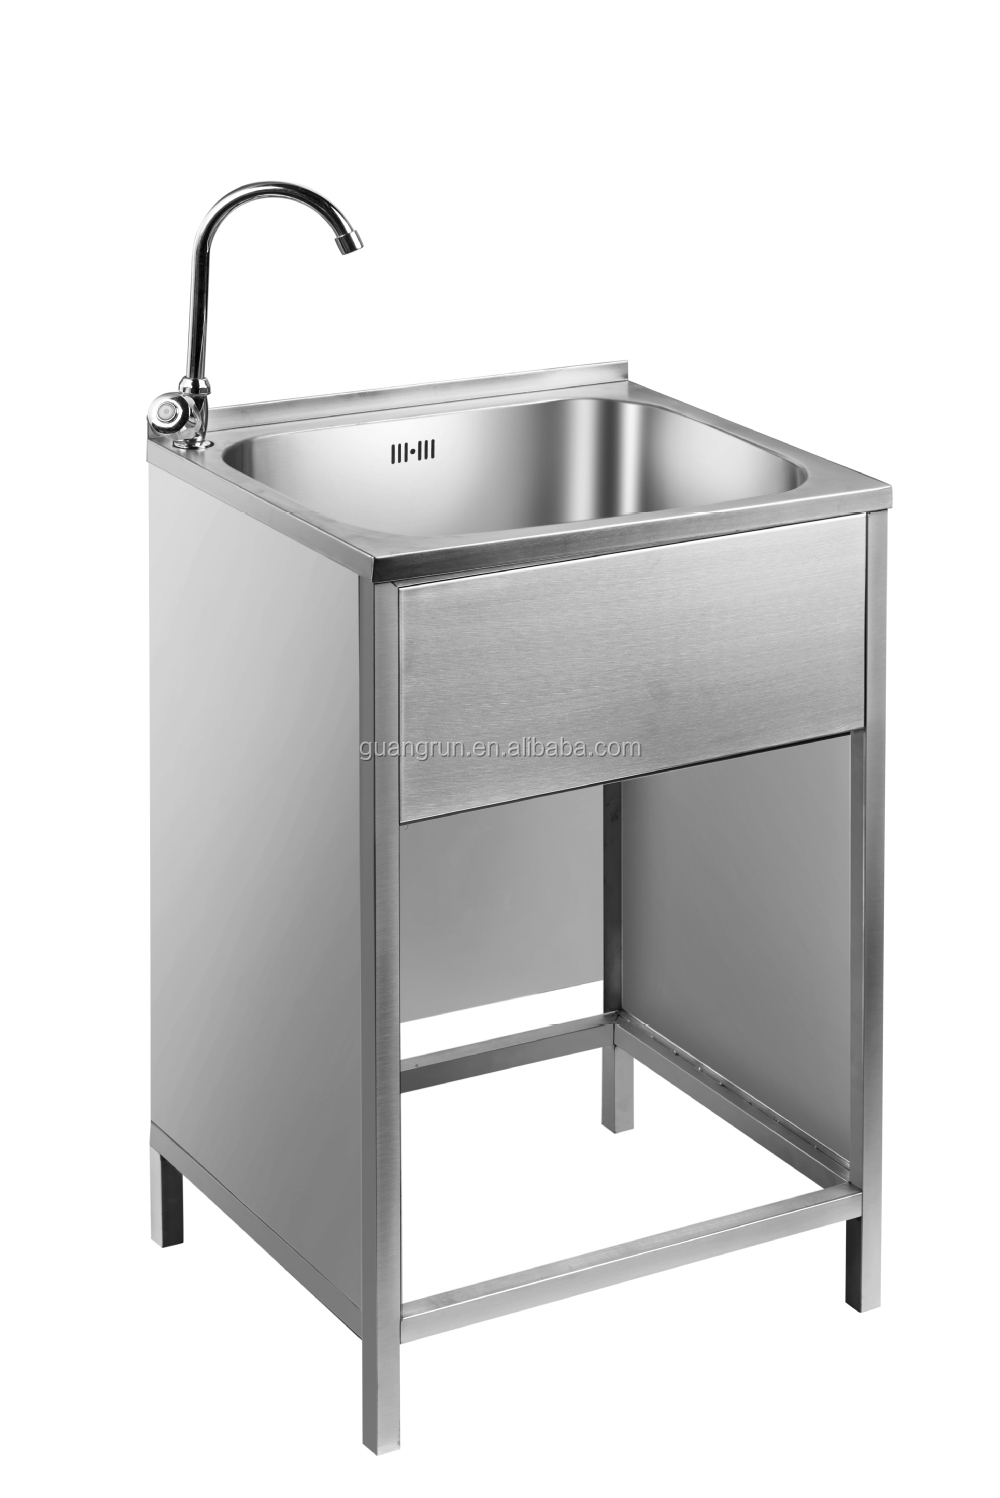 Australia New Zealand Hot Sale Commercial Stainless Steel